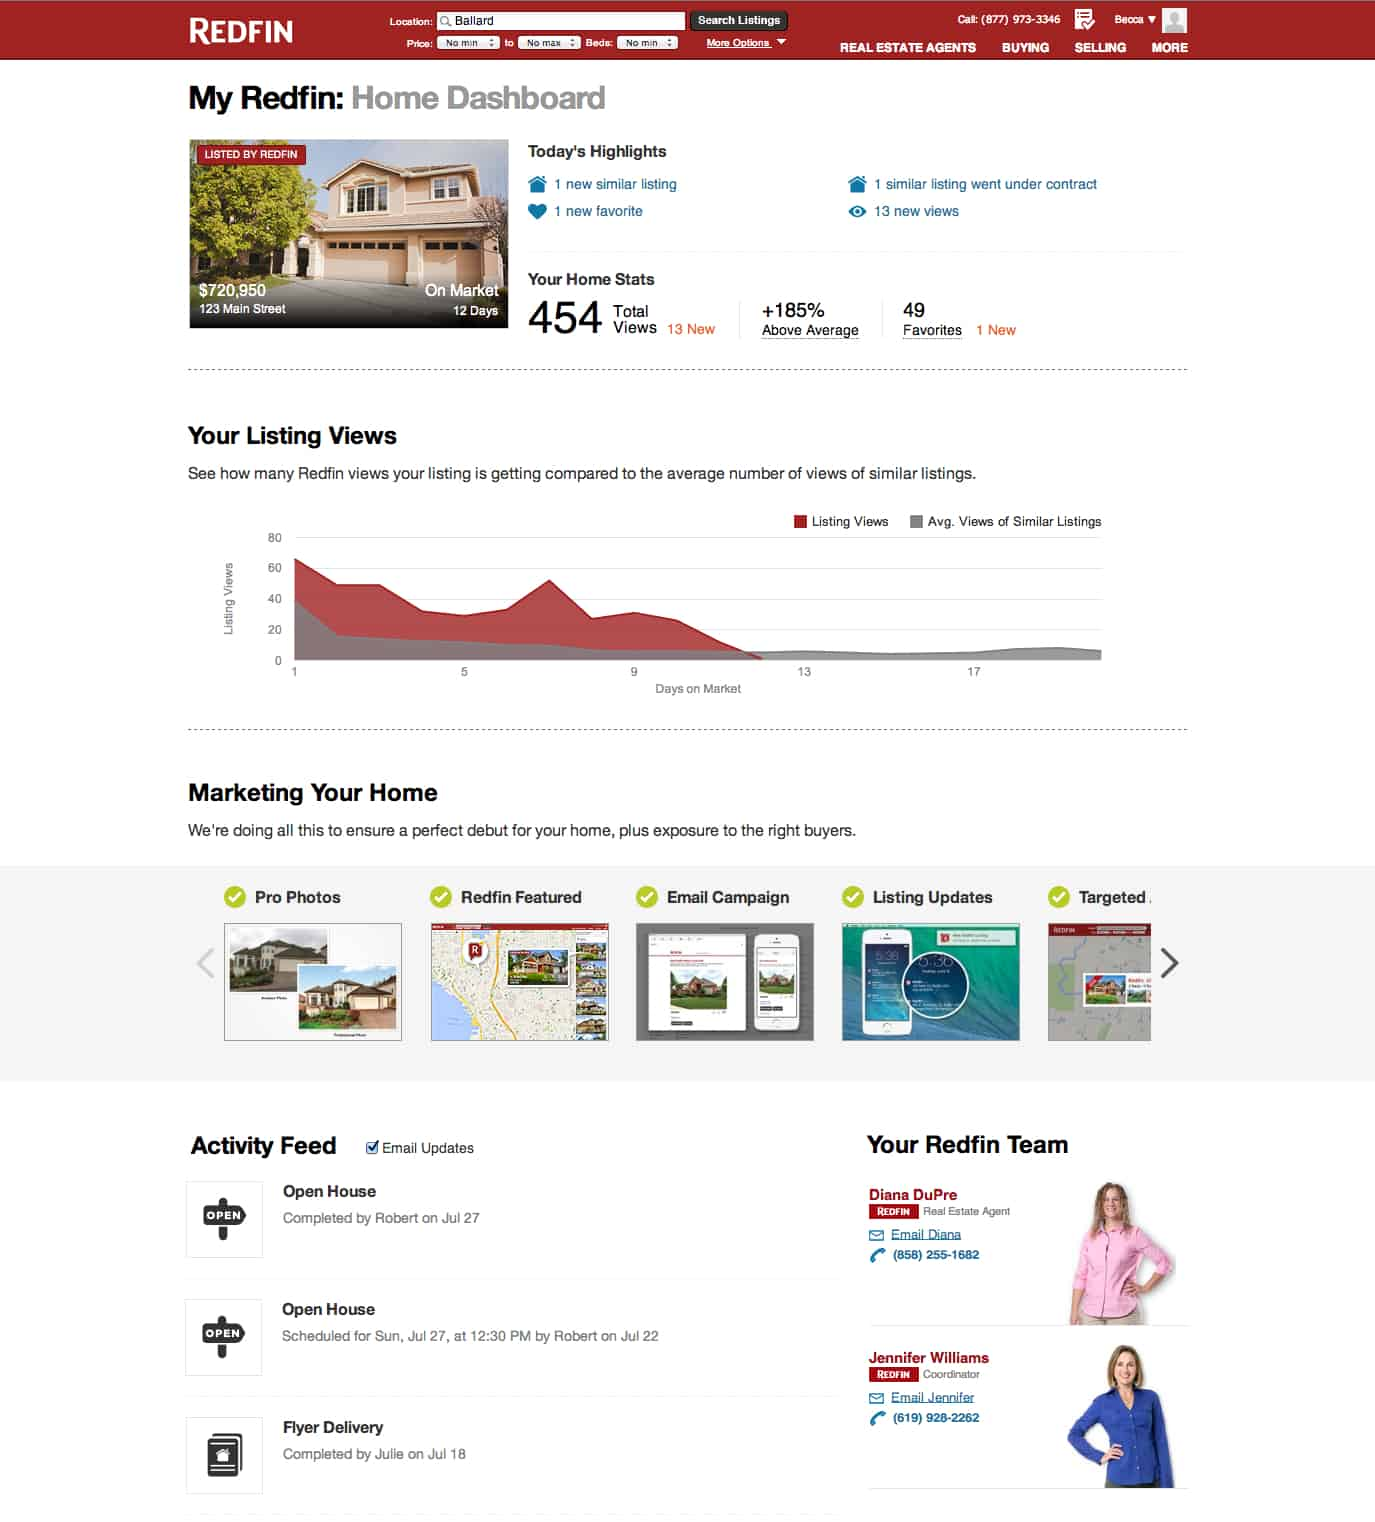 The Redfin Home Dashboard makes selling your home more convenient, with an online checklist of every step in the process.